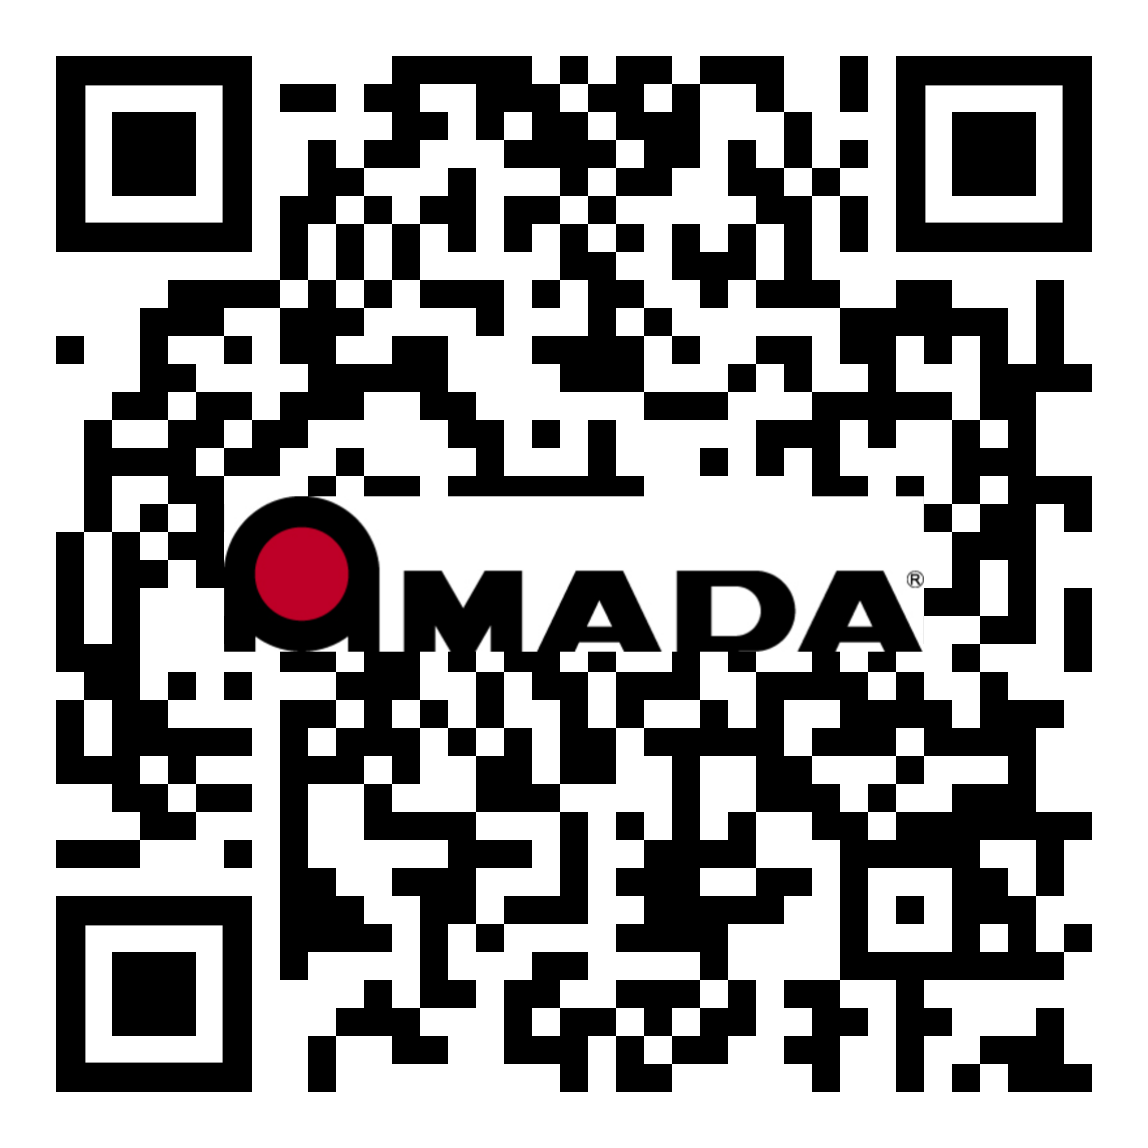 QRcode_202008.png